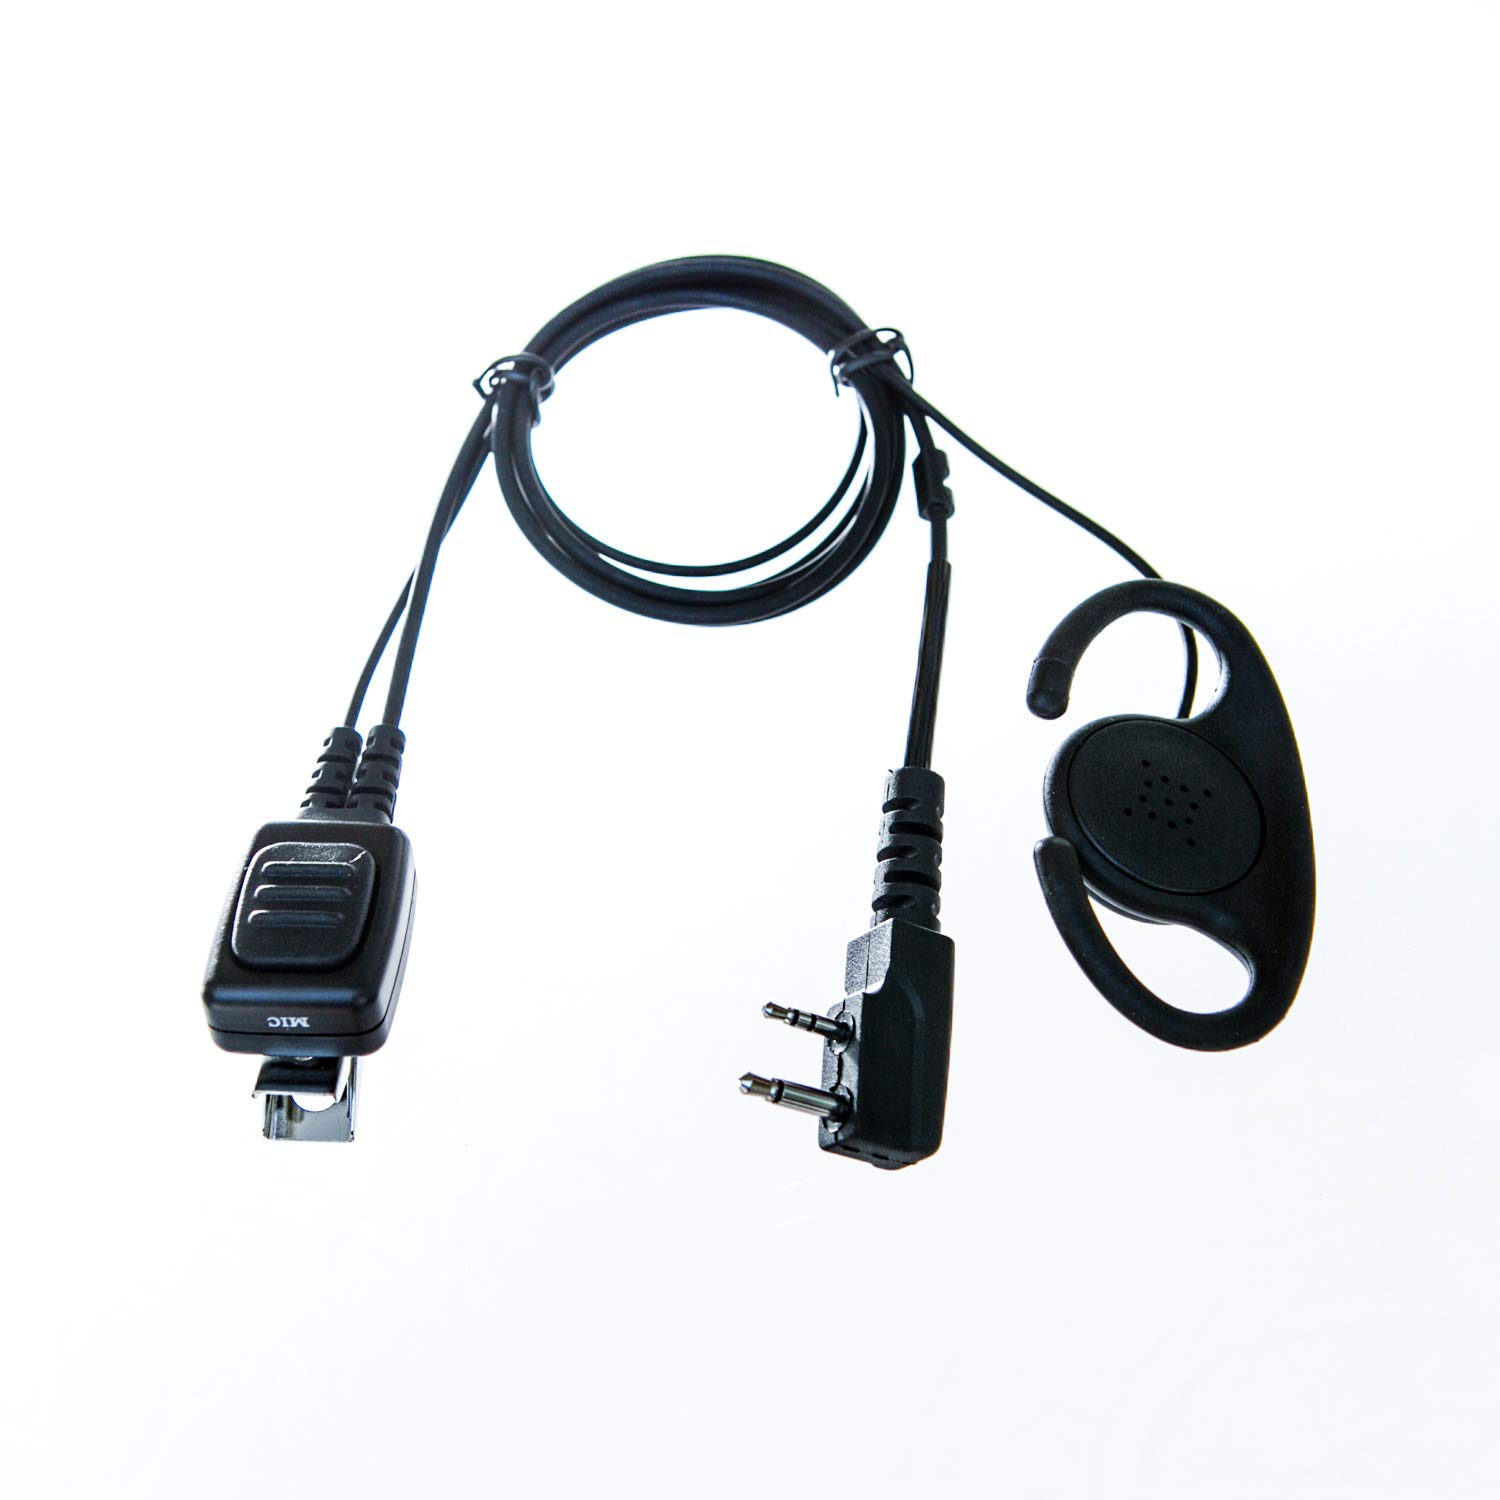 Adjustable D shape Earpiece  with mic for Icom radio (2 pin)